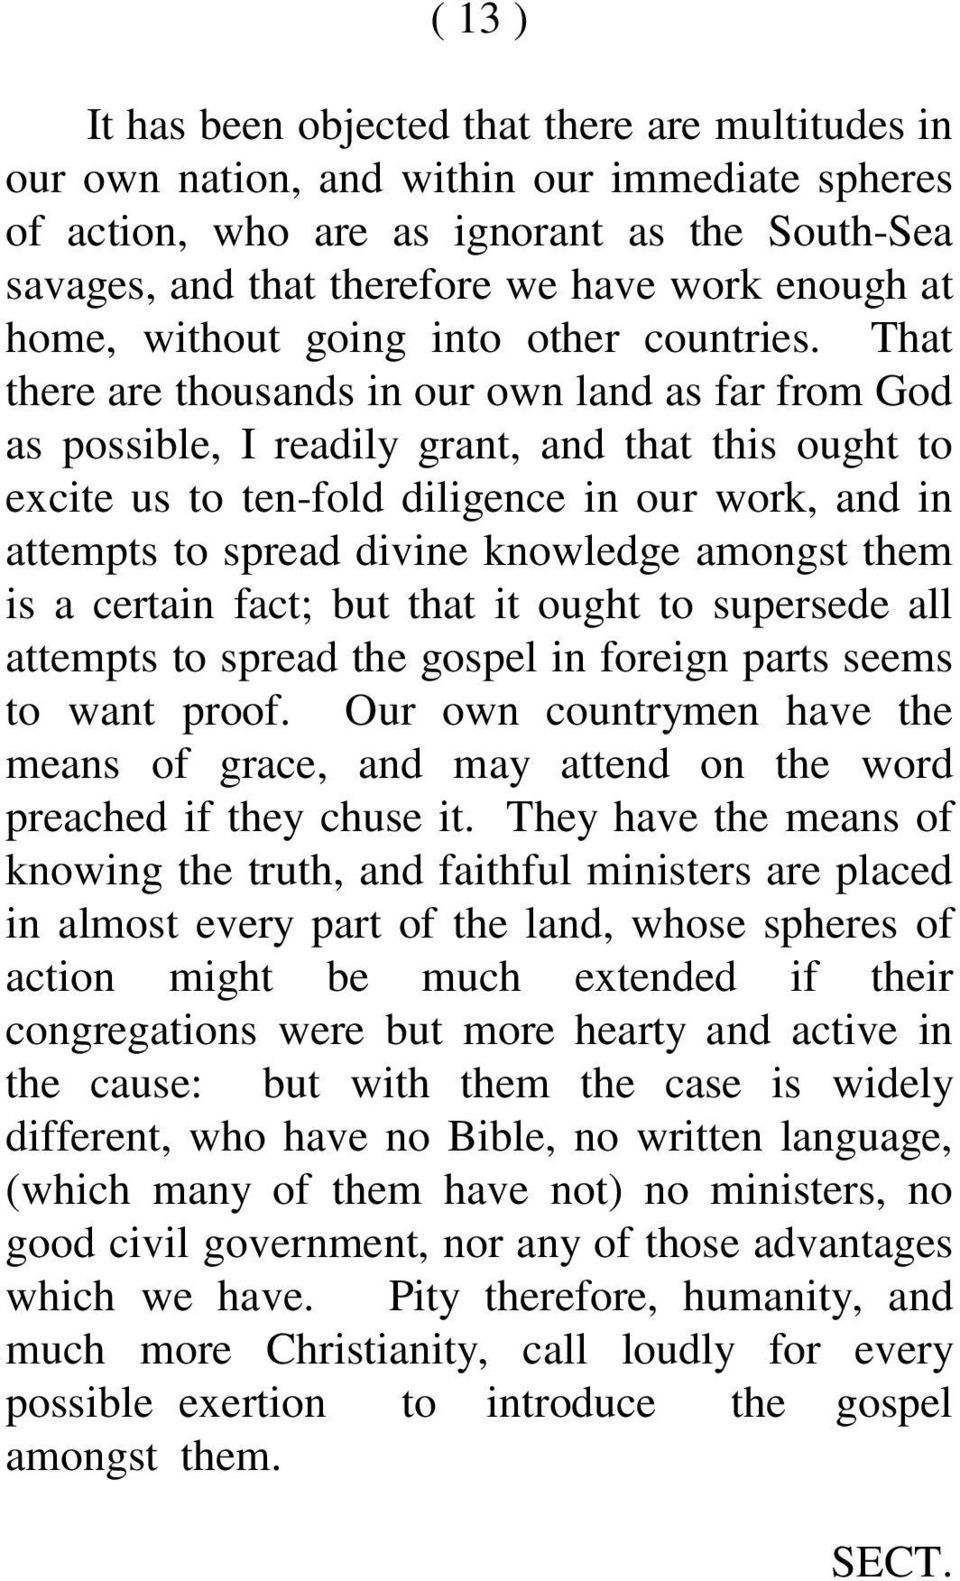 That there are thousands in our own land as far from God as possible, I readily grant, and that this ought to excite us to ten-fold diligence in our work, and in attempts to spread divine knowledge